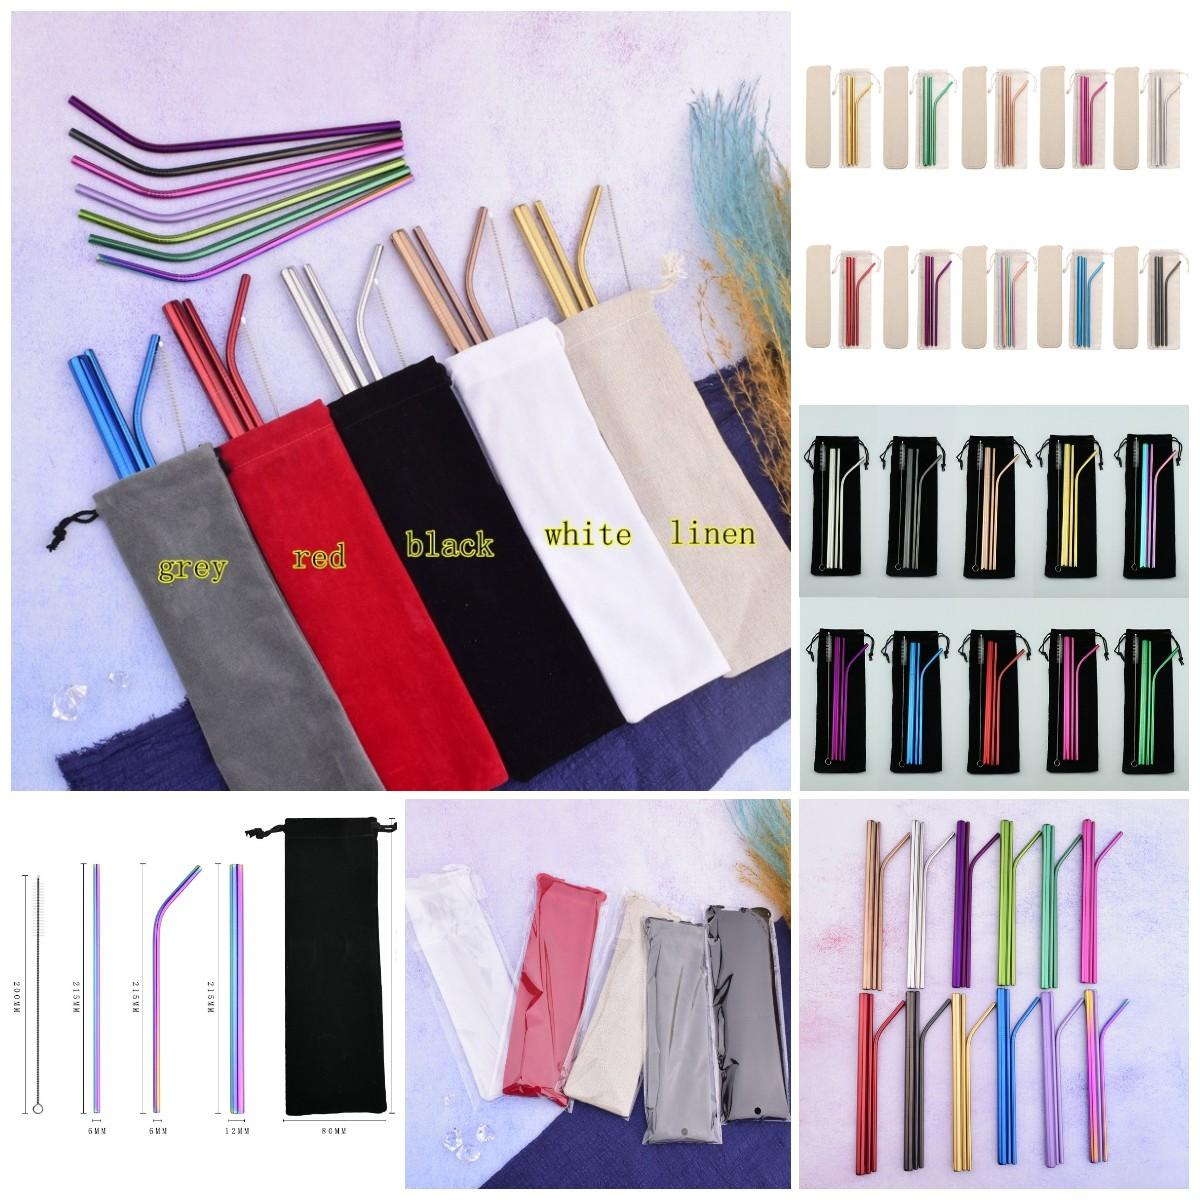 Stainless Steel Straw Set With Cleaner Brush Cloth Bag Reusable Drinking Straws Smoothies Straw Party Bar Drinking Tool MMA3025